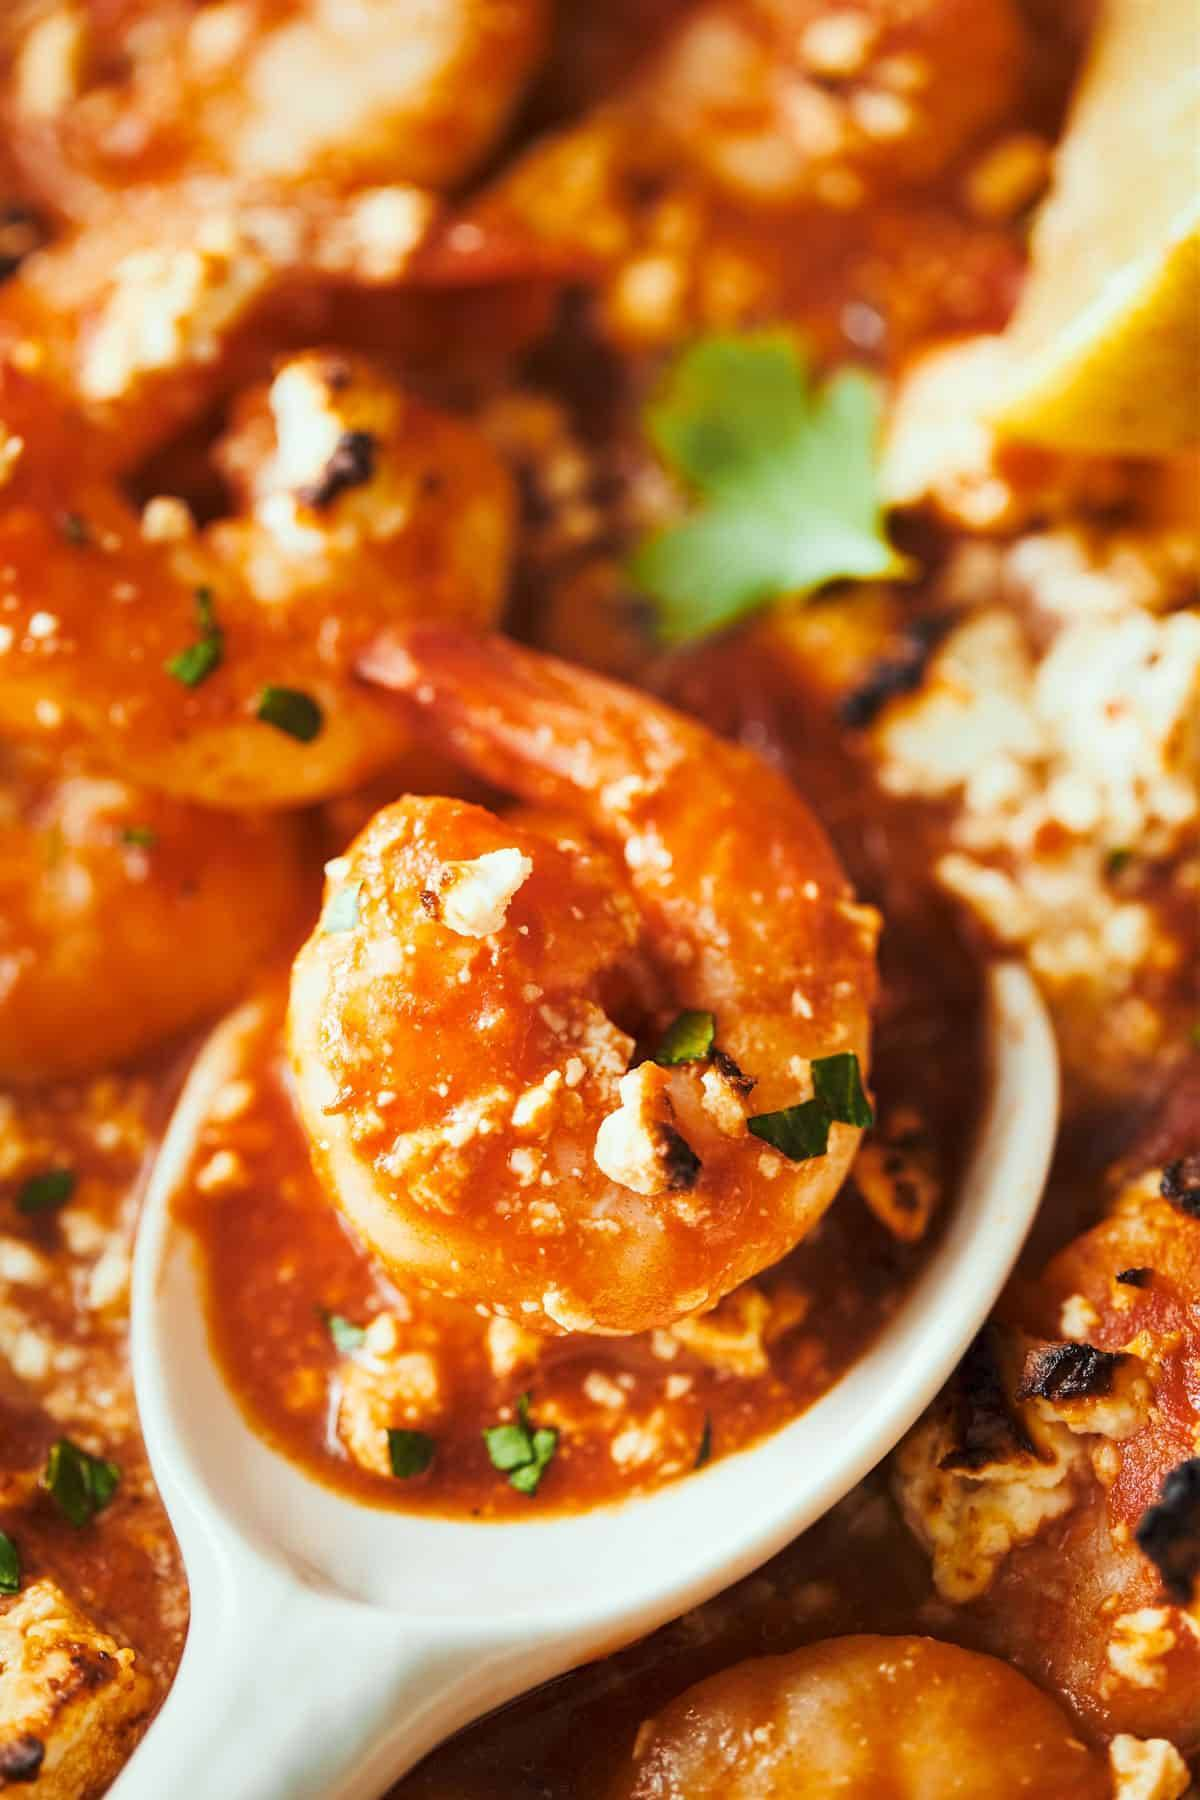 Shrimp in sauce with feta.